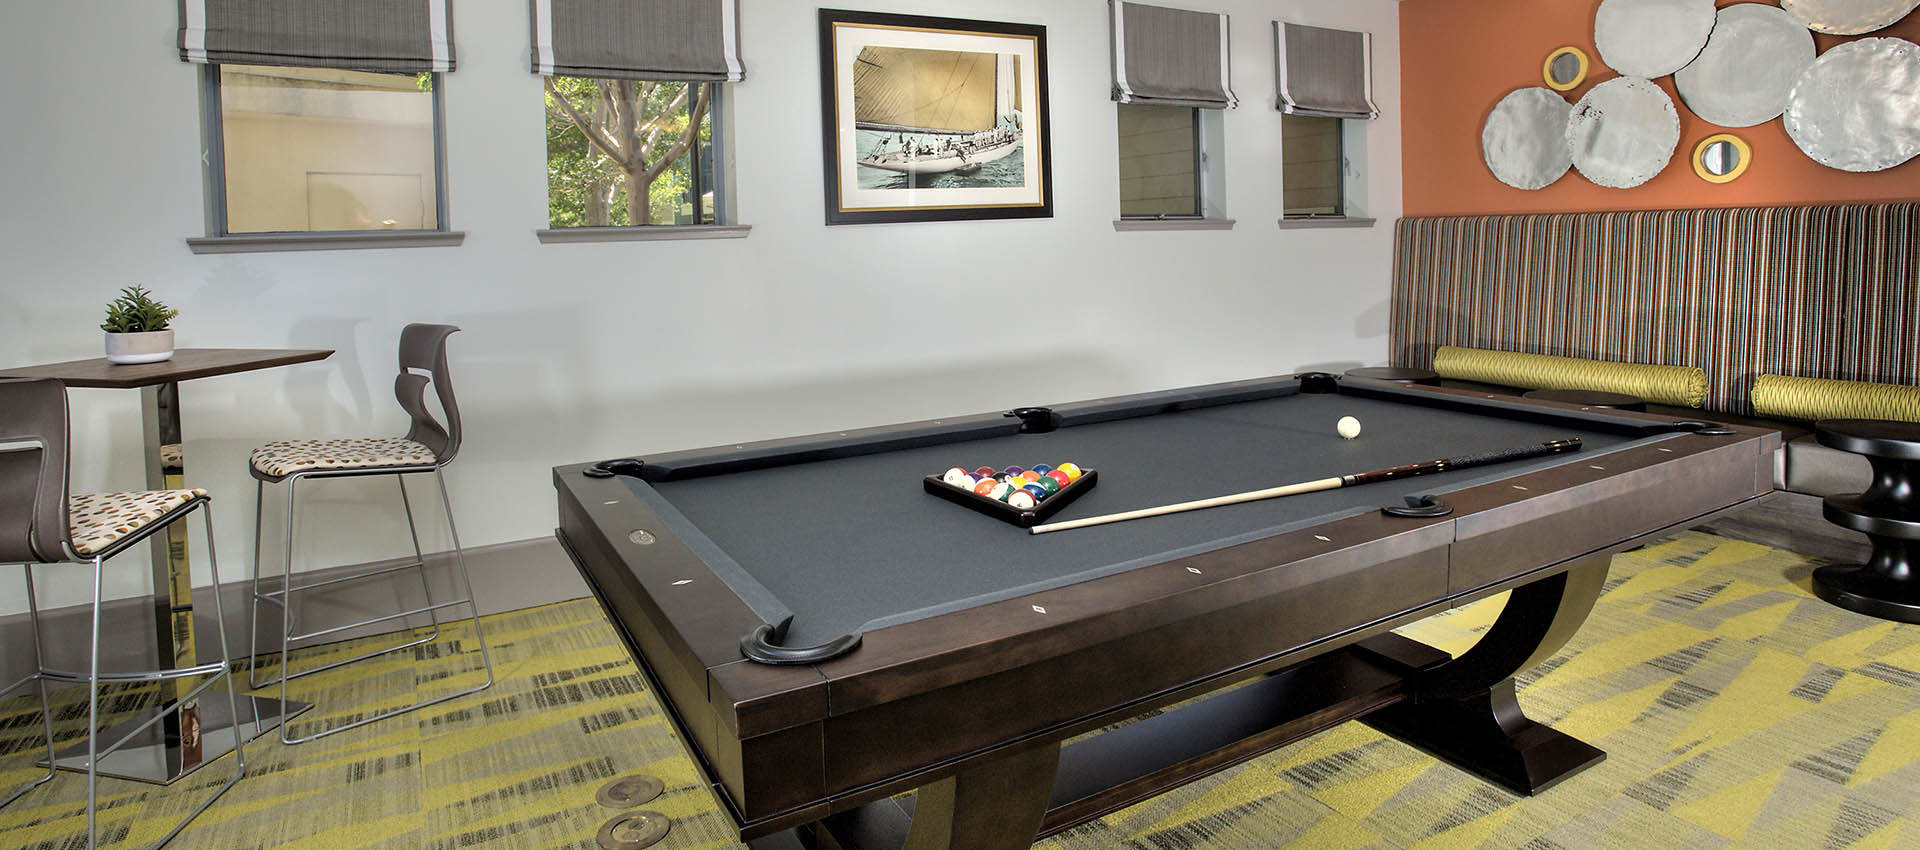 Billiards Lounge at Azure Apartment Homes in Petaluma, California